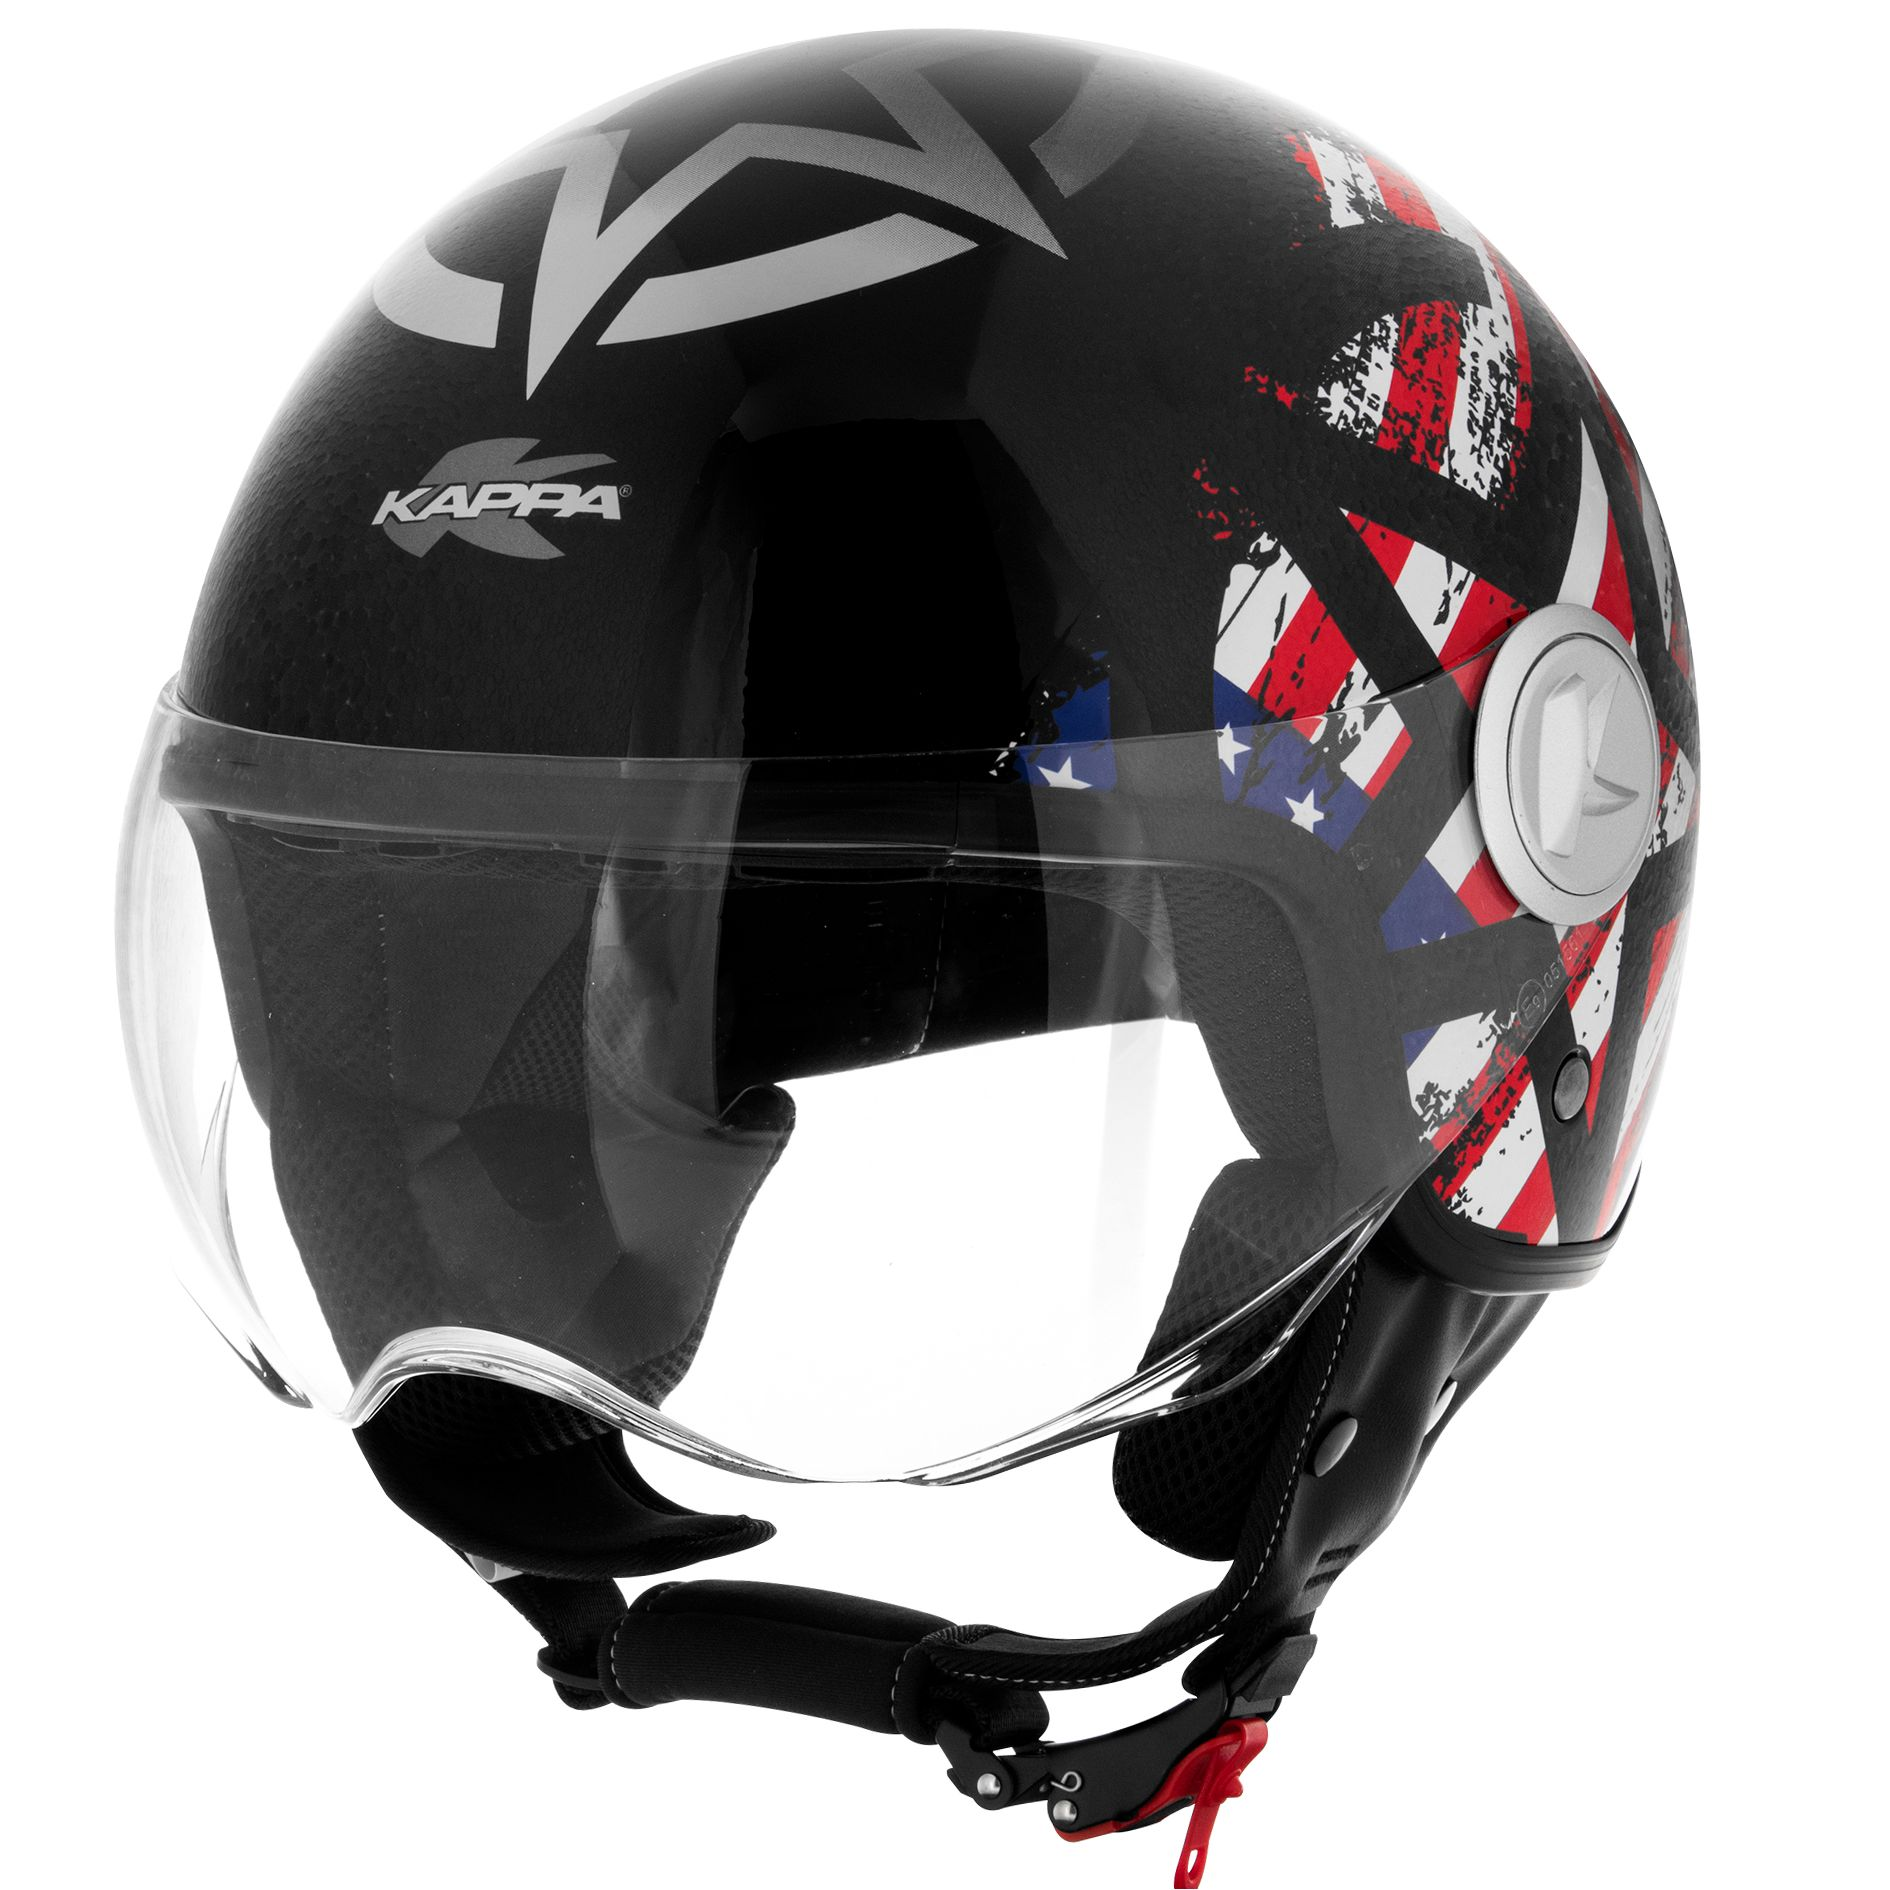 Casque Kappa Kv20 Rio Graphic Usa